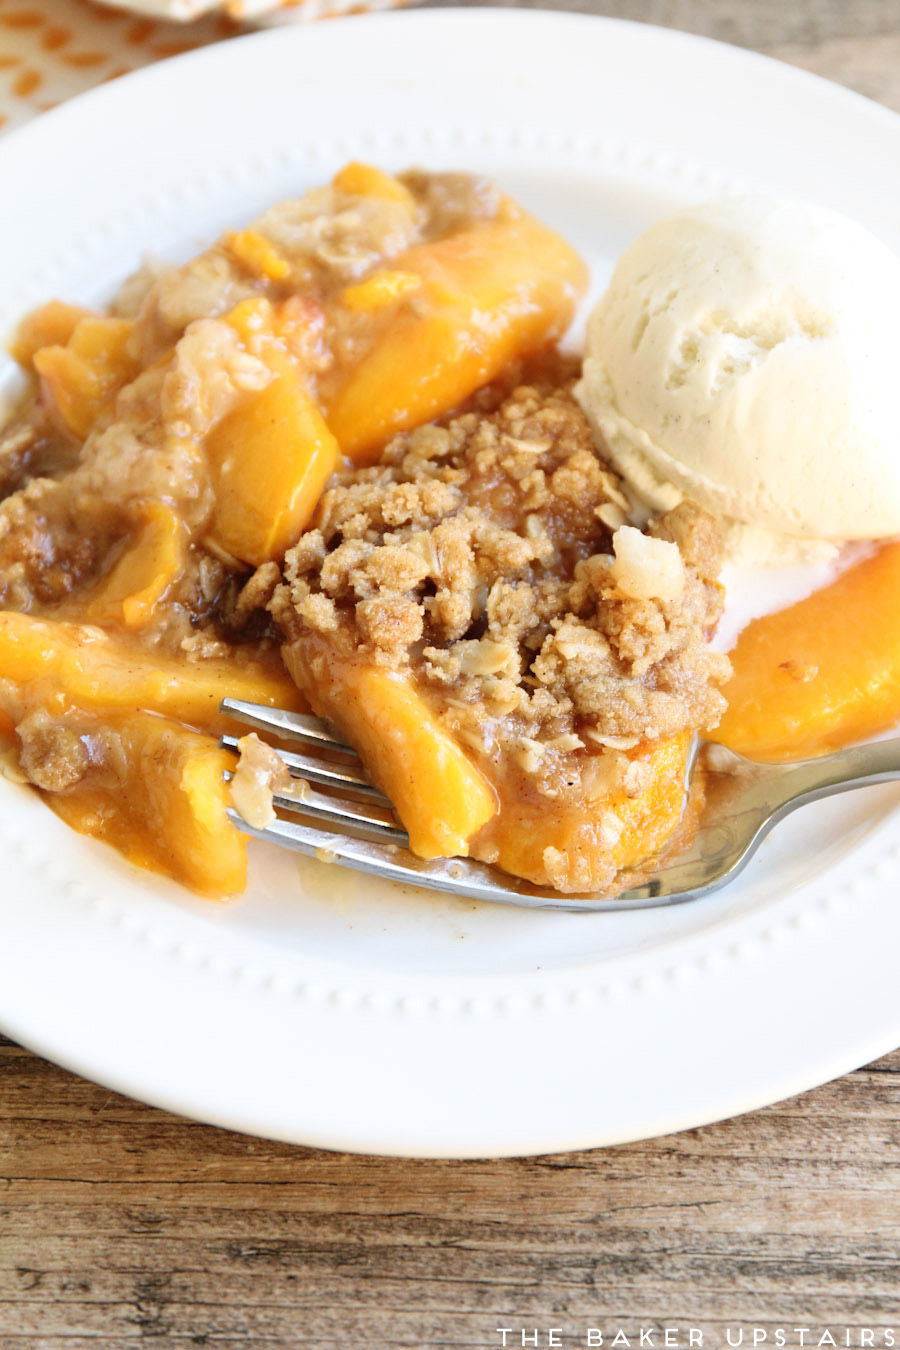 Peach crisp pie - a delicious pie with sweet juicy peaches and a buttery, cinnamony, crunchy crisp topping!